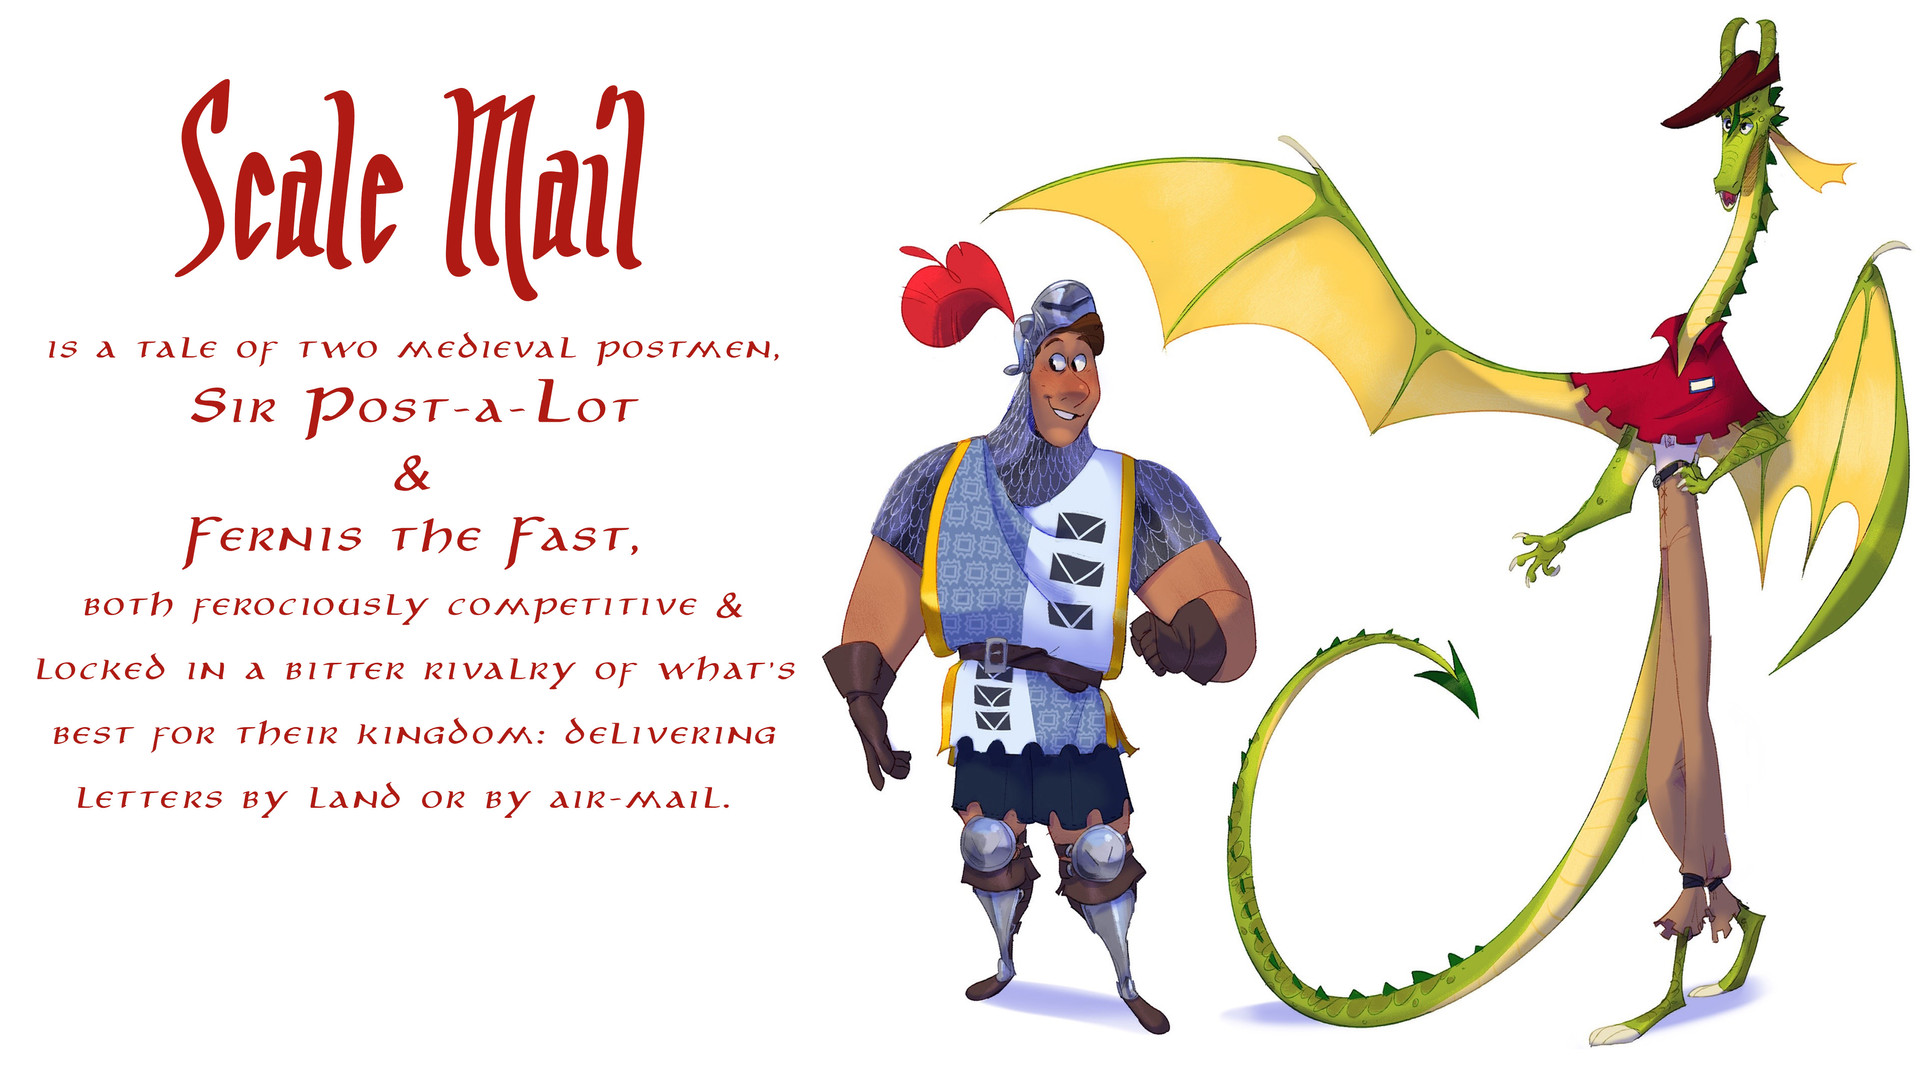 ScalemailConcept.jpg